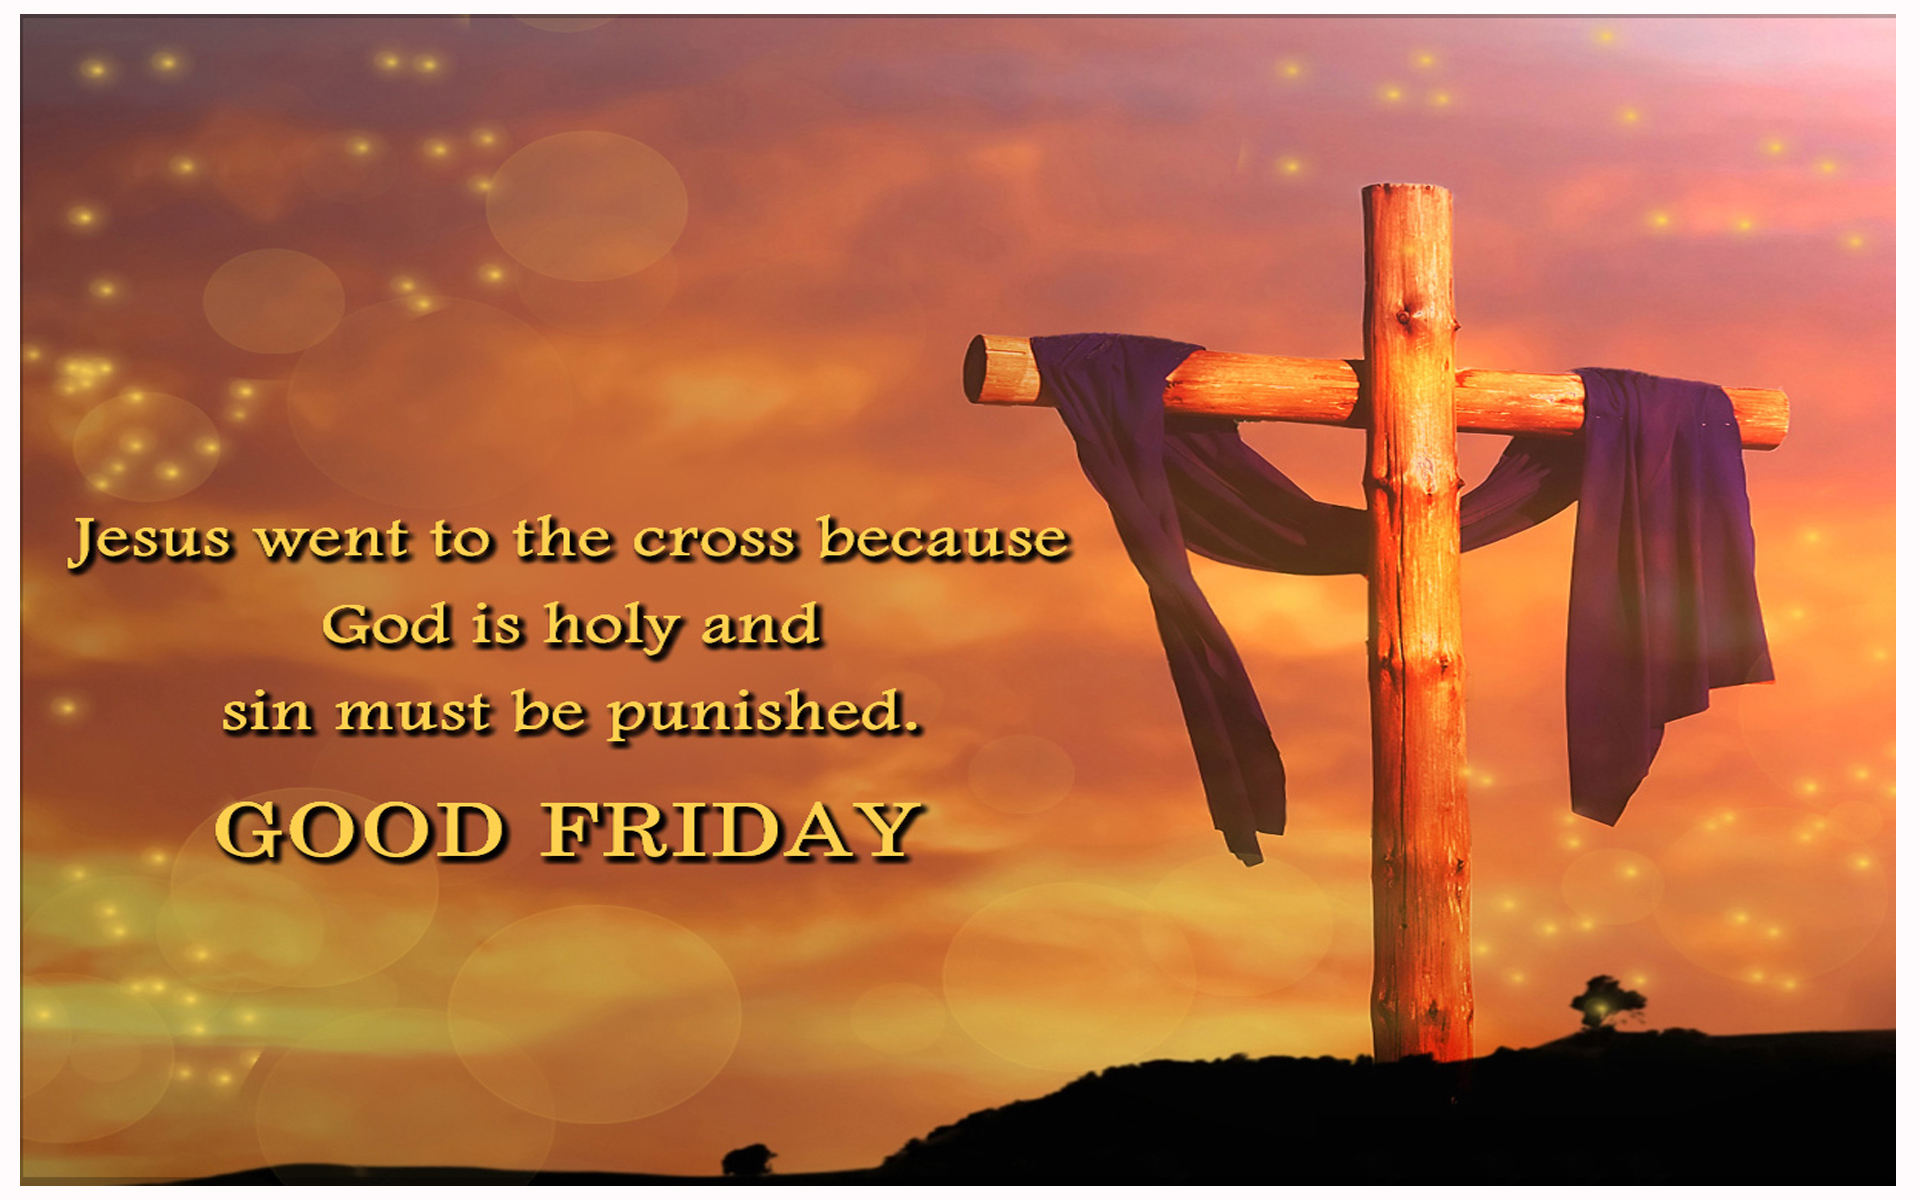 Image for good friday